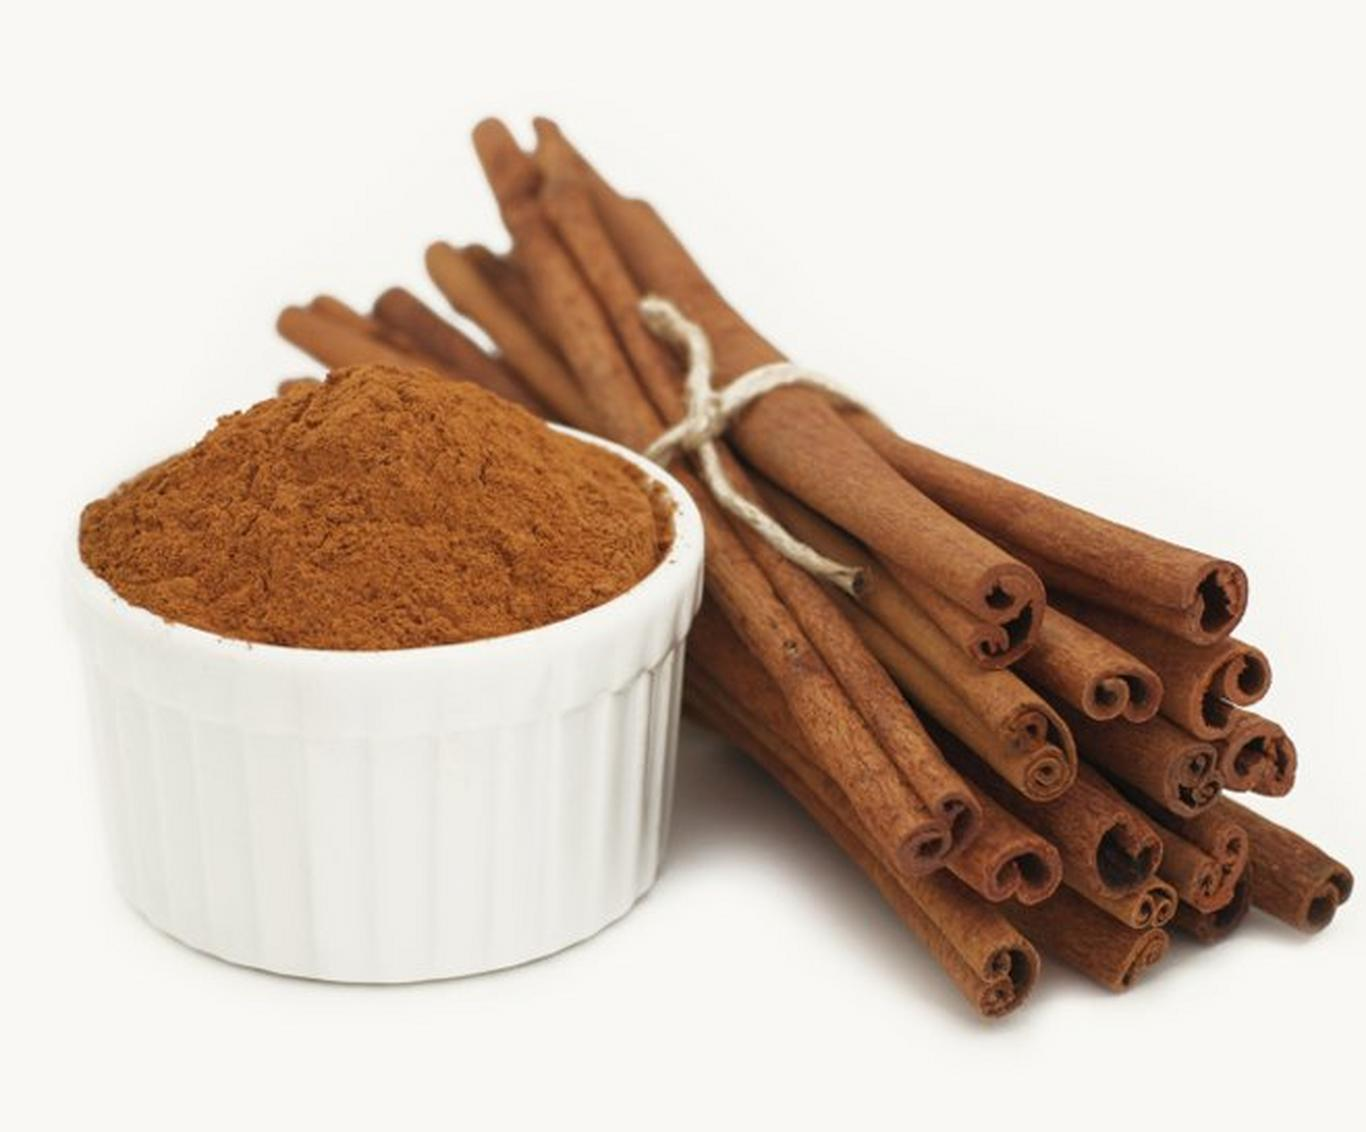 Consuming cinnamon can help boost your body's level of glutathione.